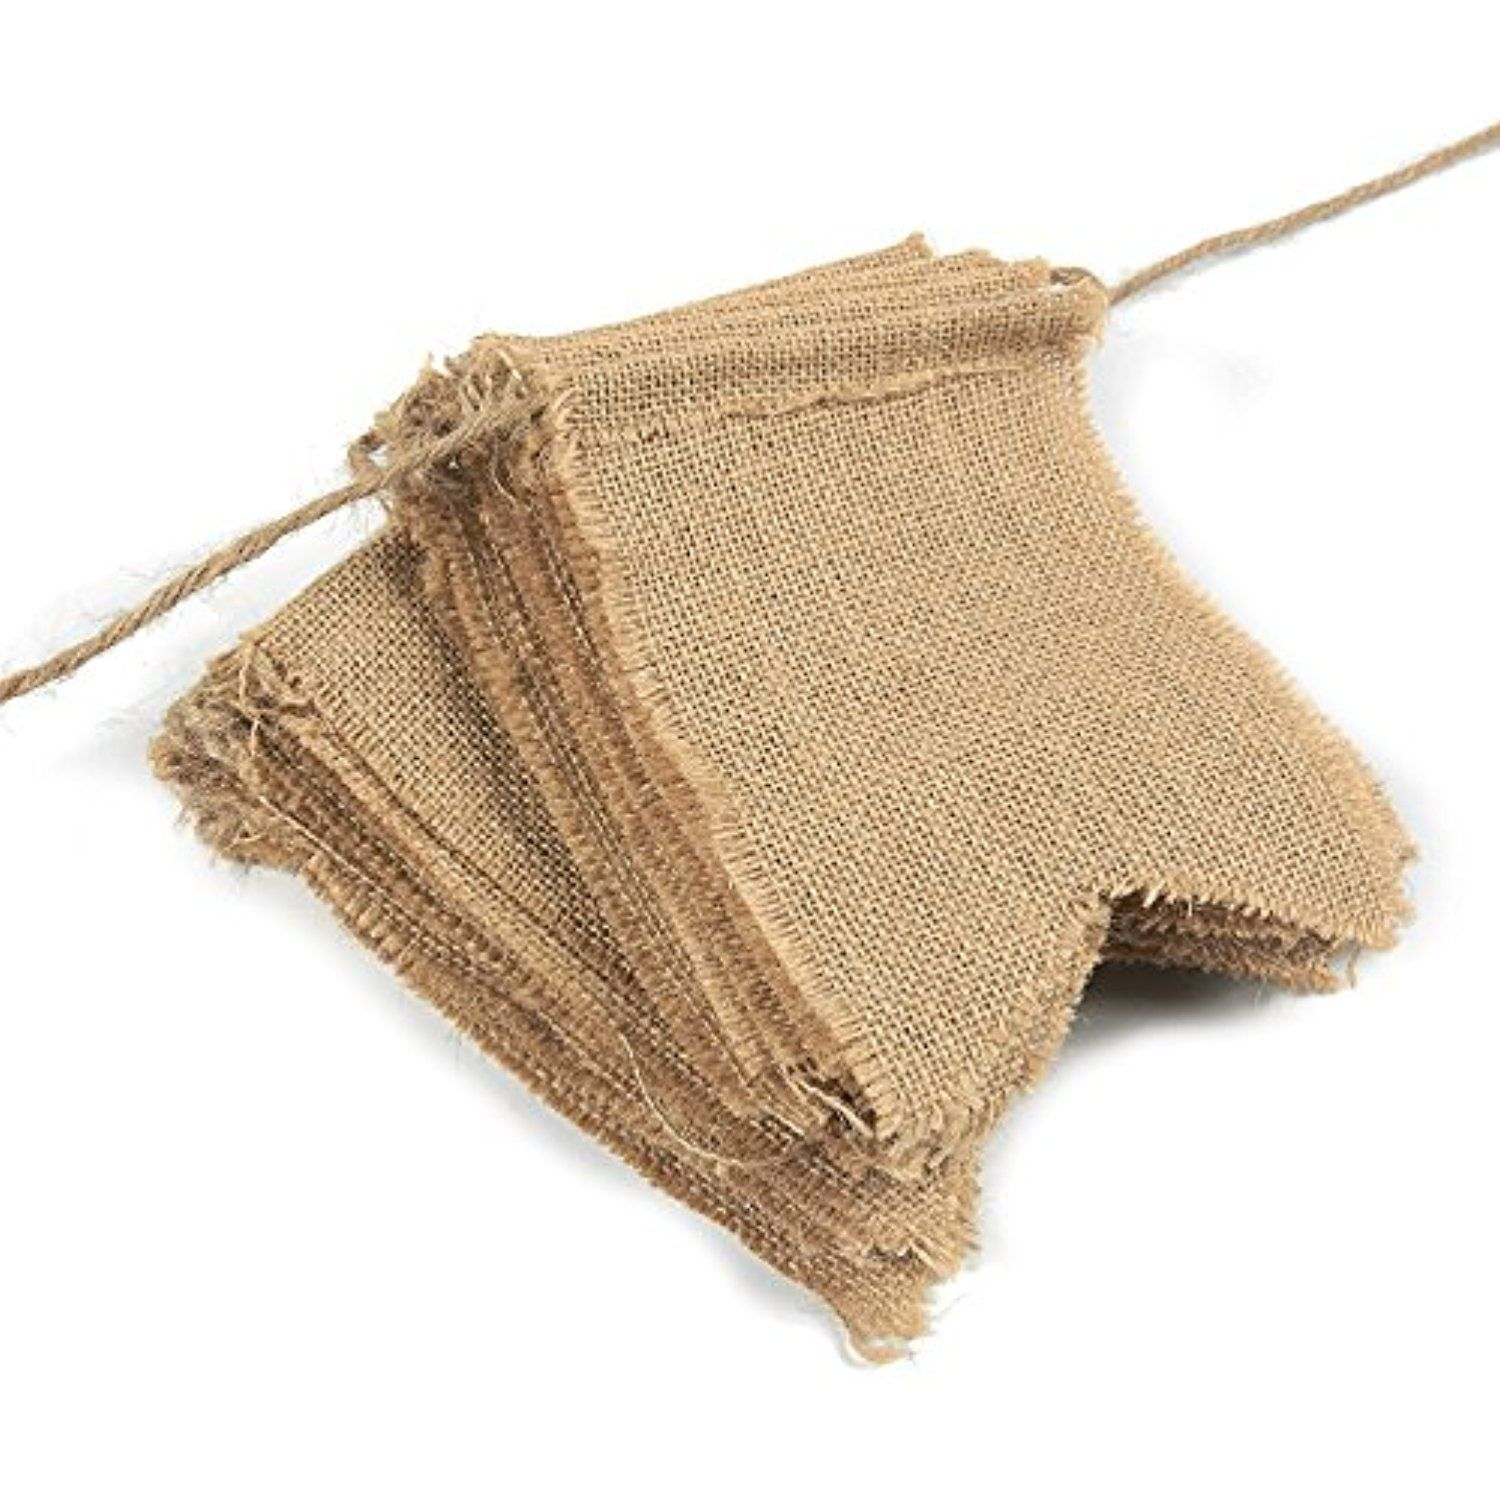 Burlap banner flags flag pennant banner kit rustic bridal shower